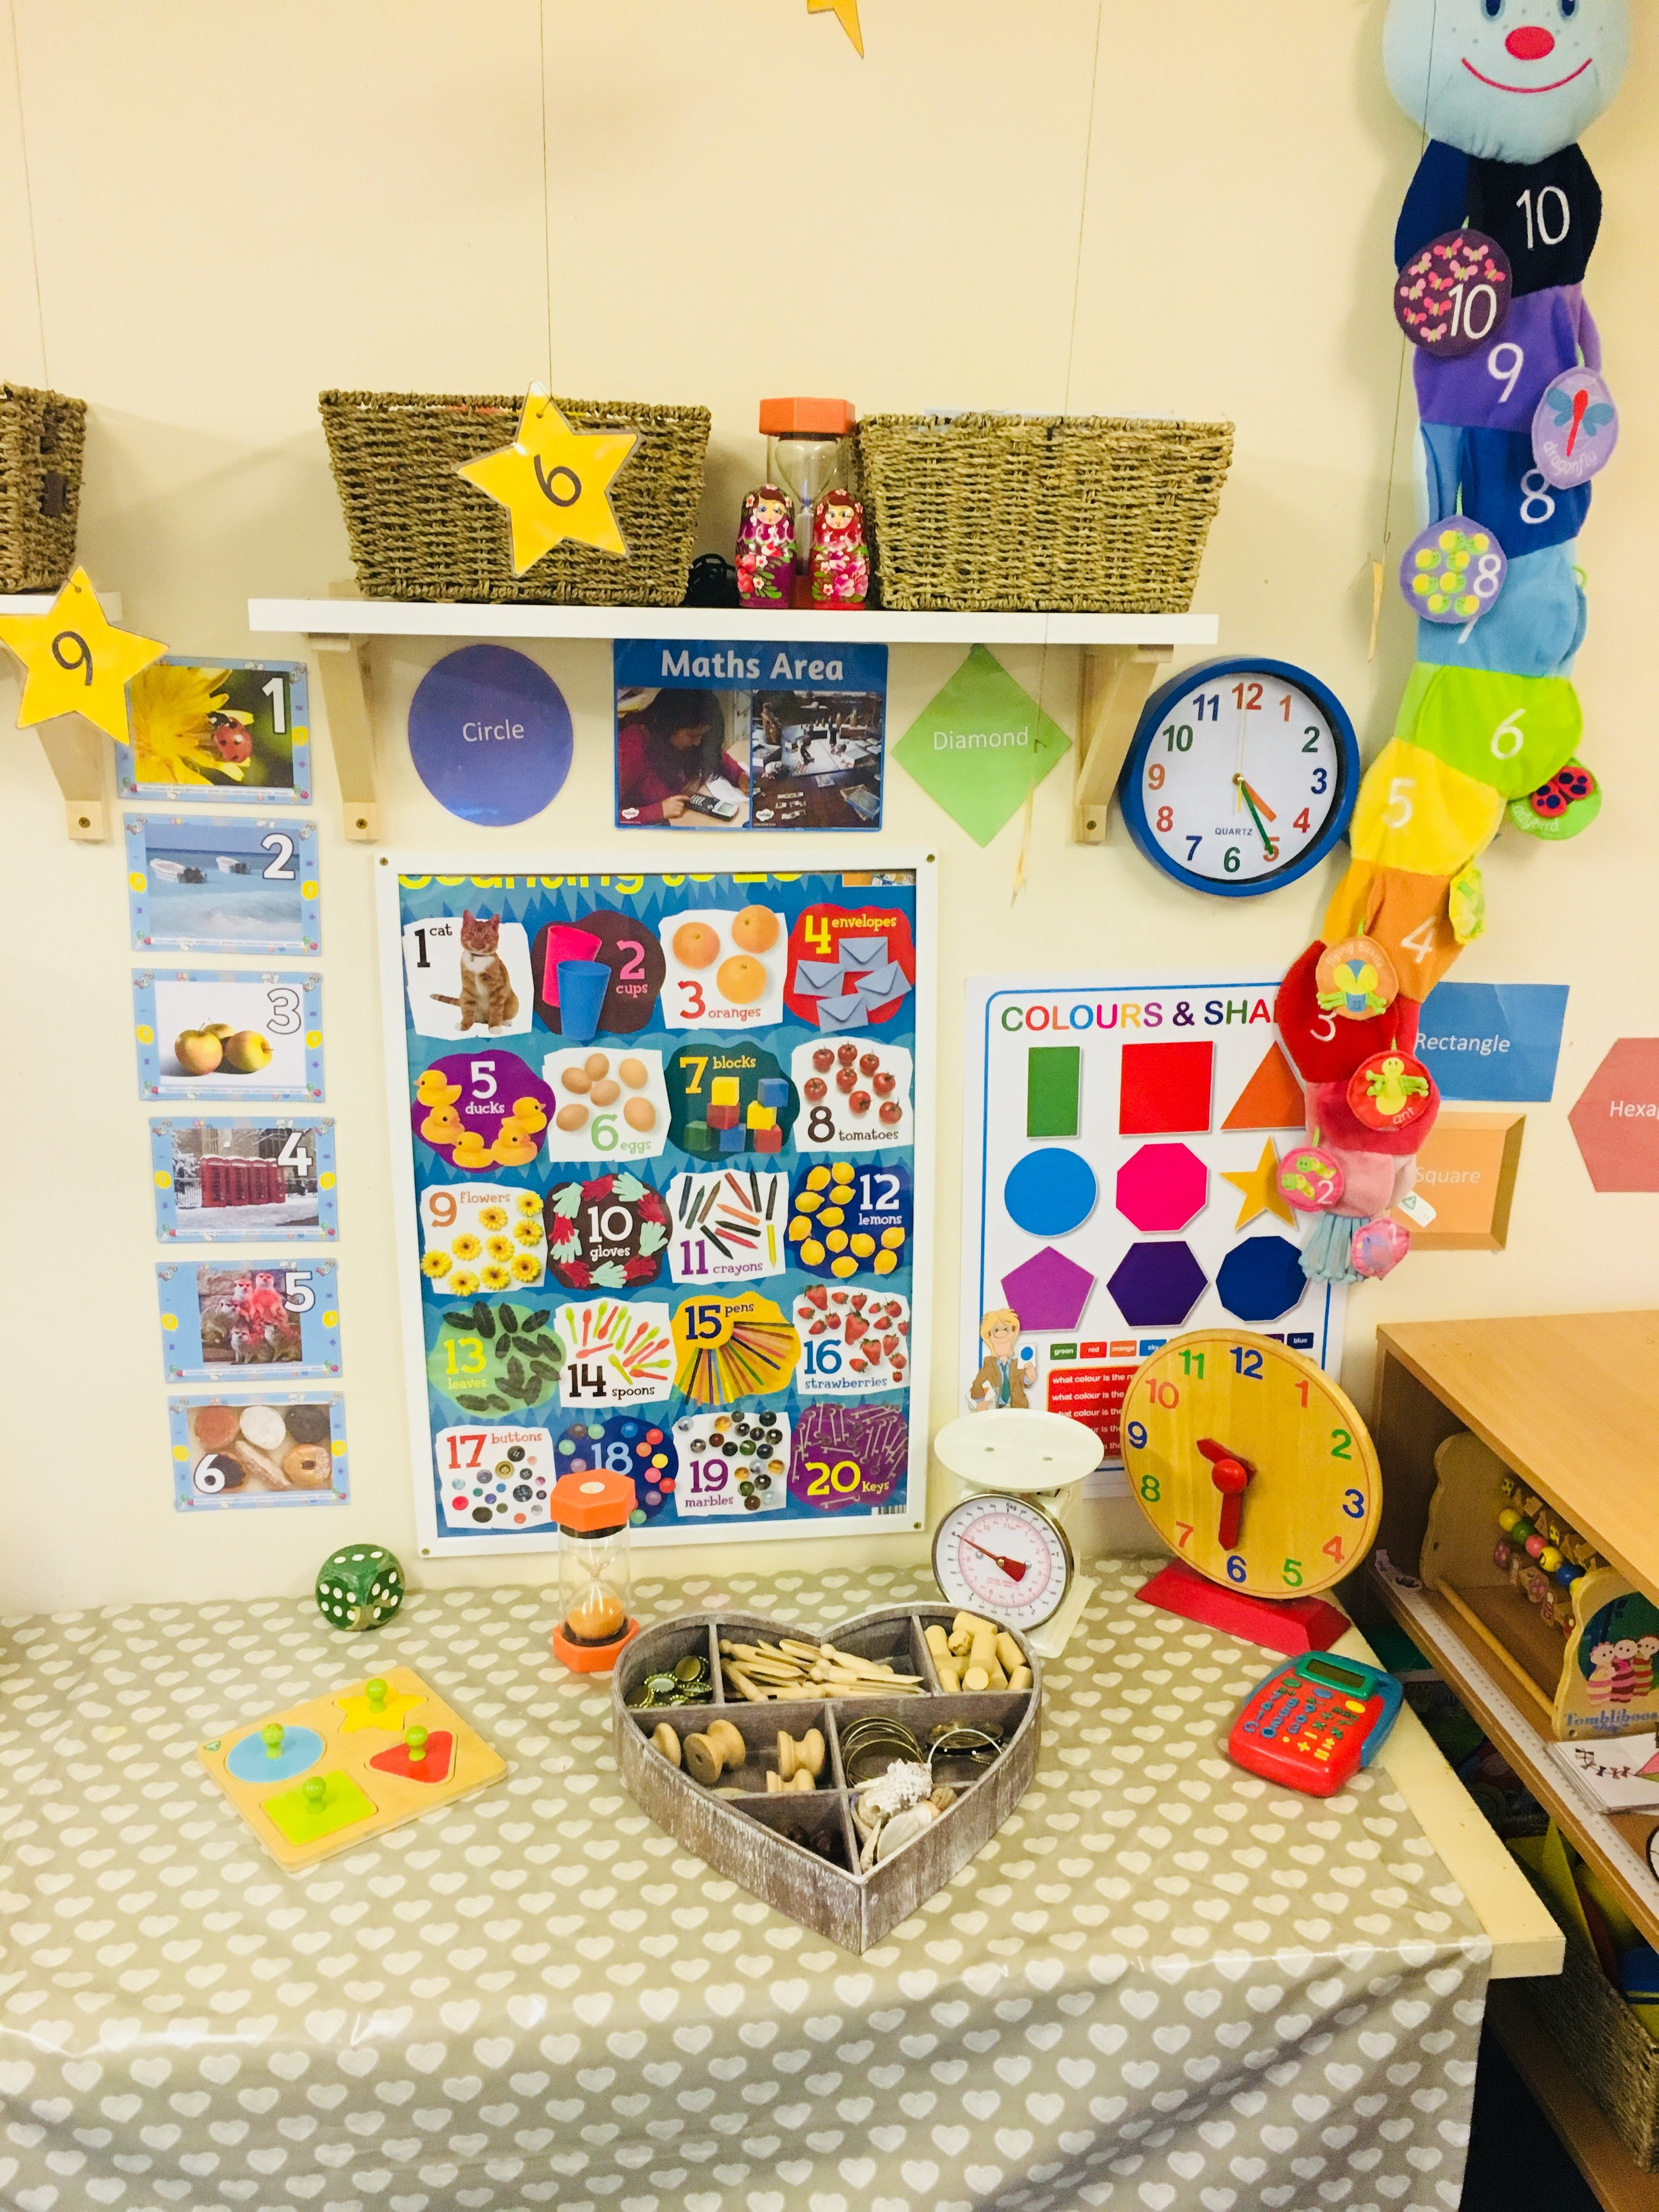 The pre-school department of Little Fingers Day Nursery in Darenth, Kent is organised around the EYFC document.